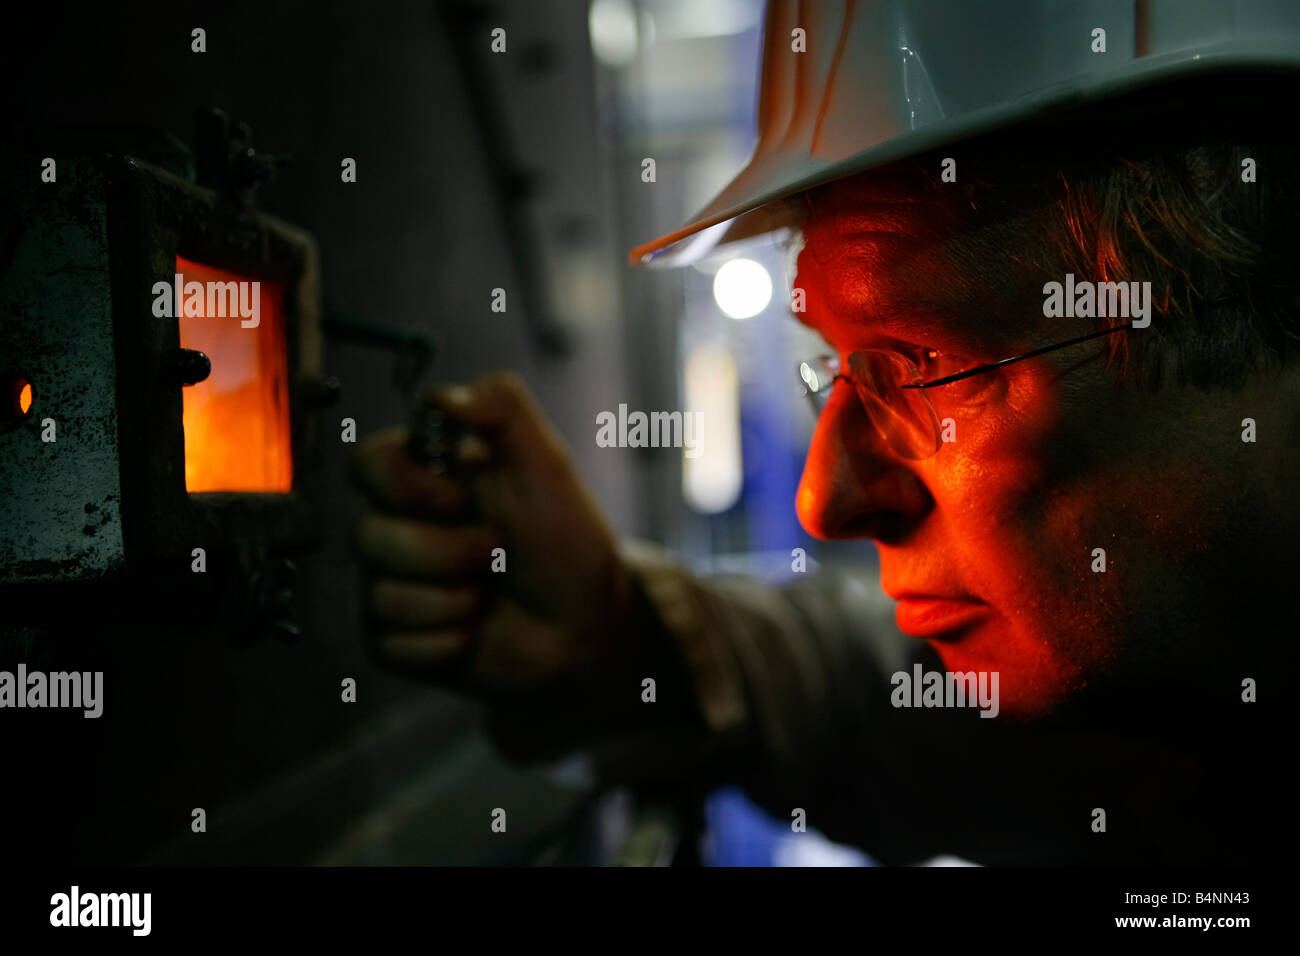 Furnace burning wood chippings to generate electricity Man inspecting furnace through viewing window - Stock Image